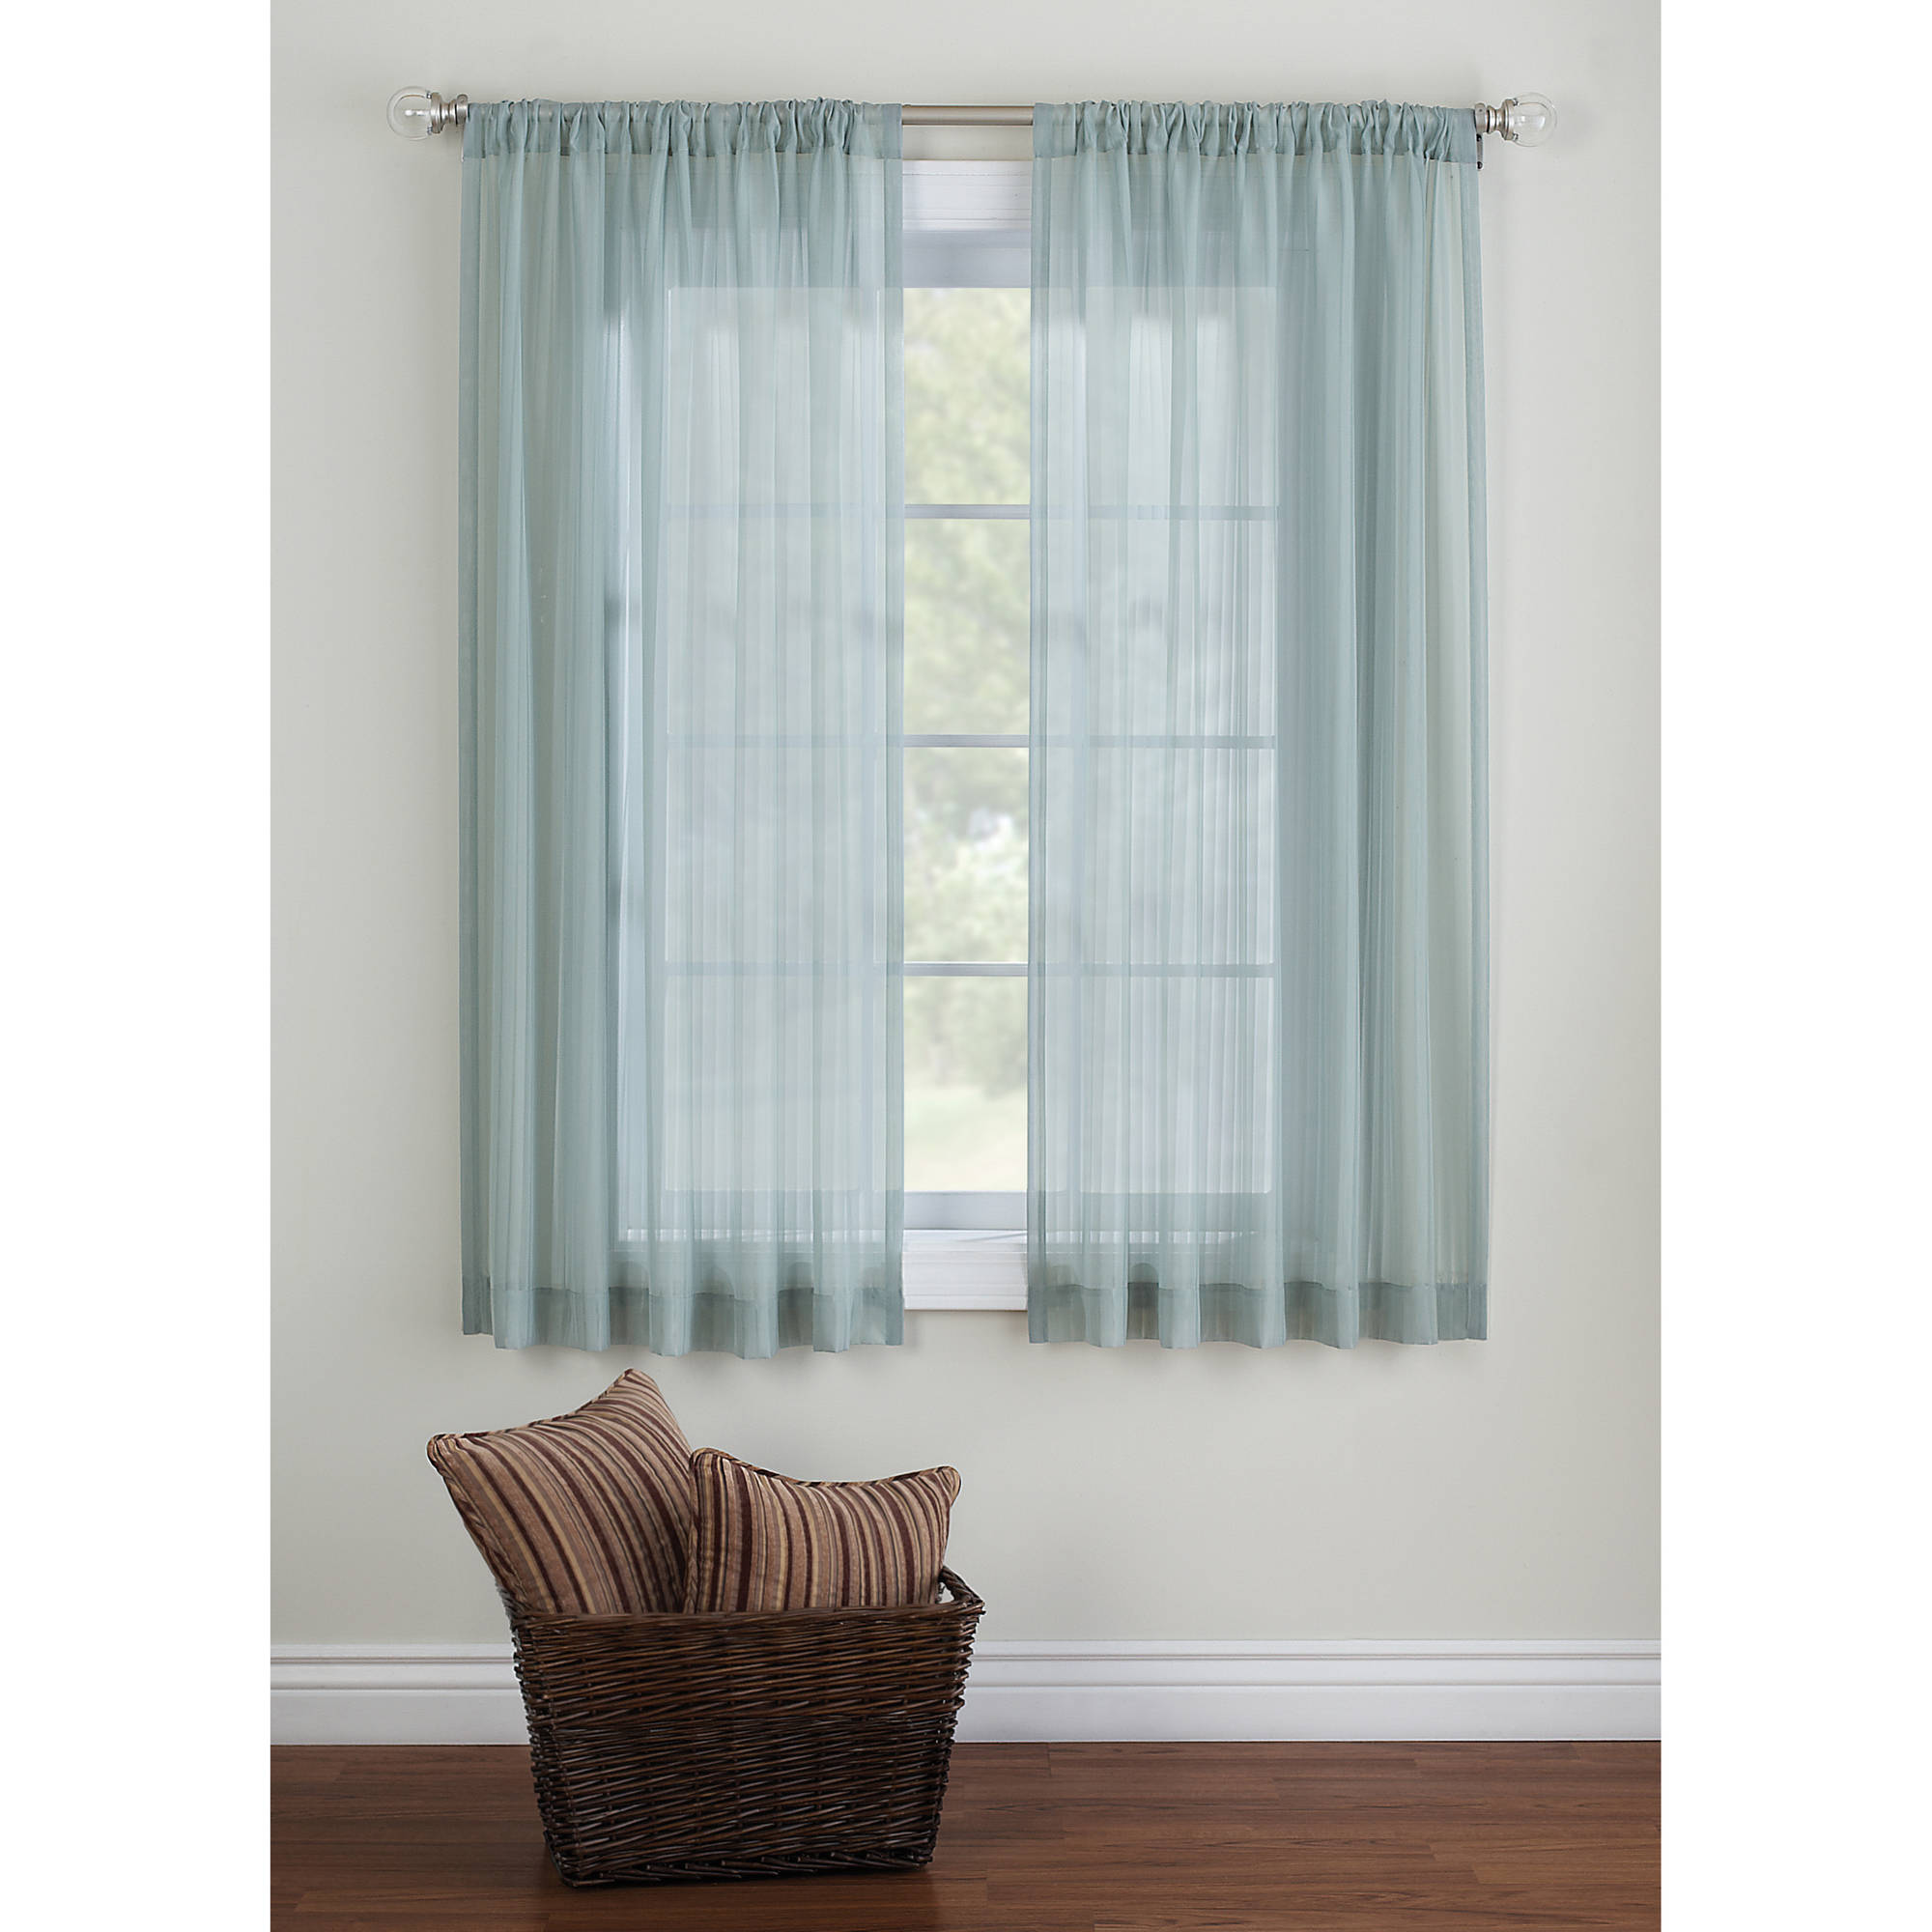 drapes sheer light curtains drape crushed nicetown pin voile window curtain filtering panels